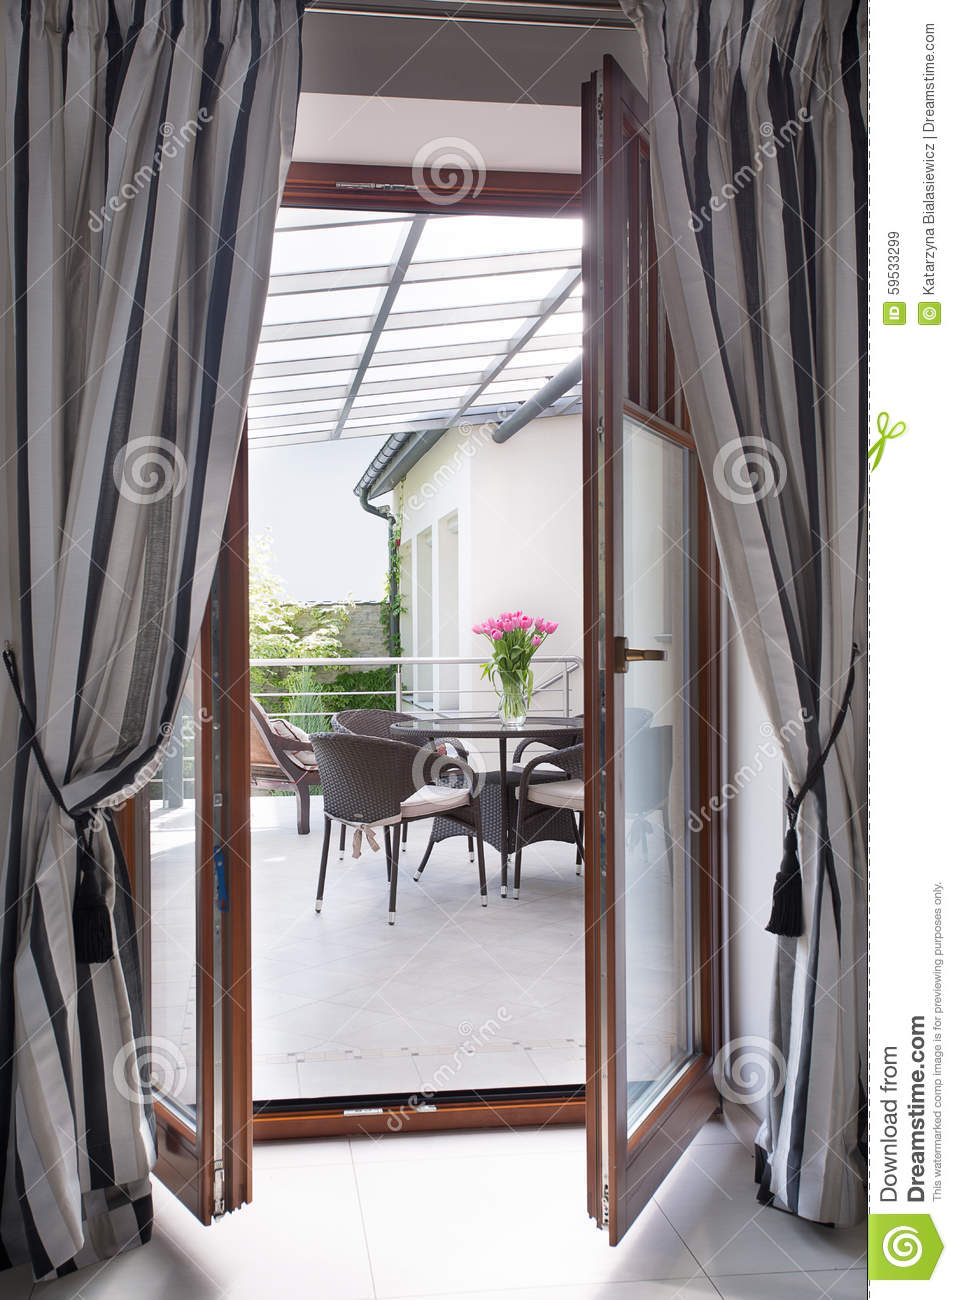 Curtain For Balcony: Balcony Door With Curtains Stock Image. Image Of Curtain